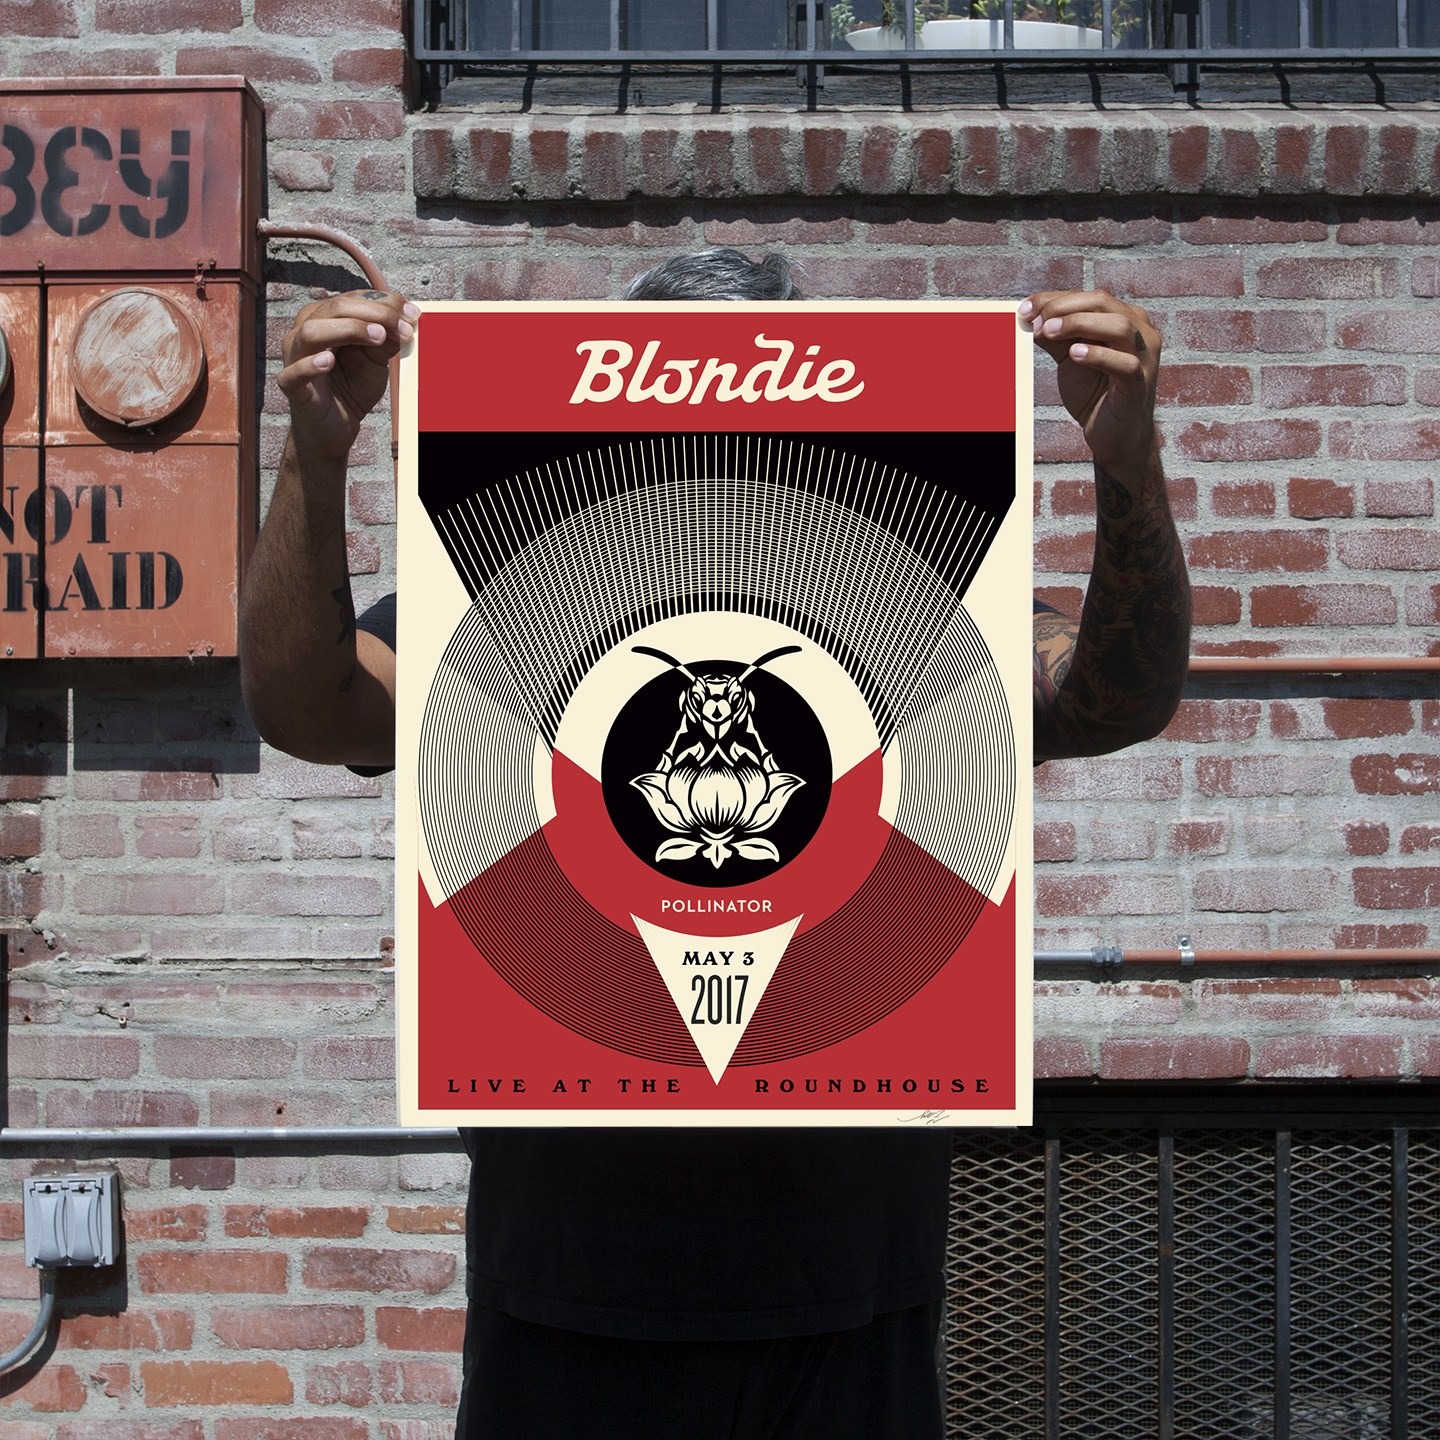 Live at the Roundhouse (Red). 18 x 24 inches. Screen print on cream Speckle Tone Paper. Signed by Shepard Fairey. Numbered edition of 150. $45. Available Thursday, June 22 @ 10AM (PDT) on  ObeyGiant.com in Store under Prints. Limit 1 per person/household.